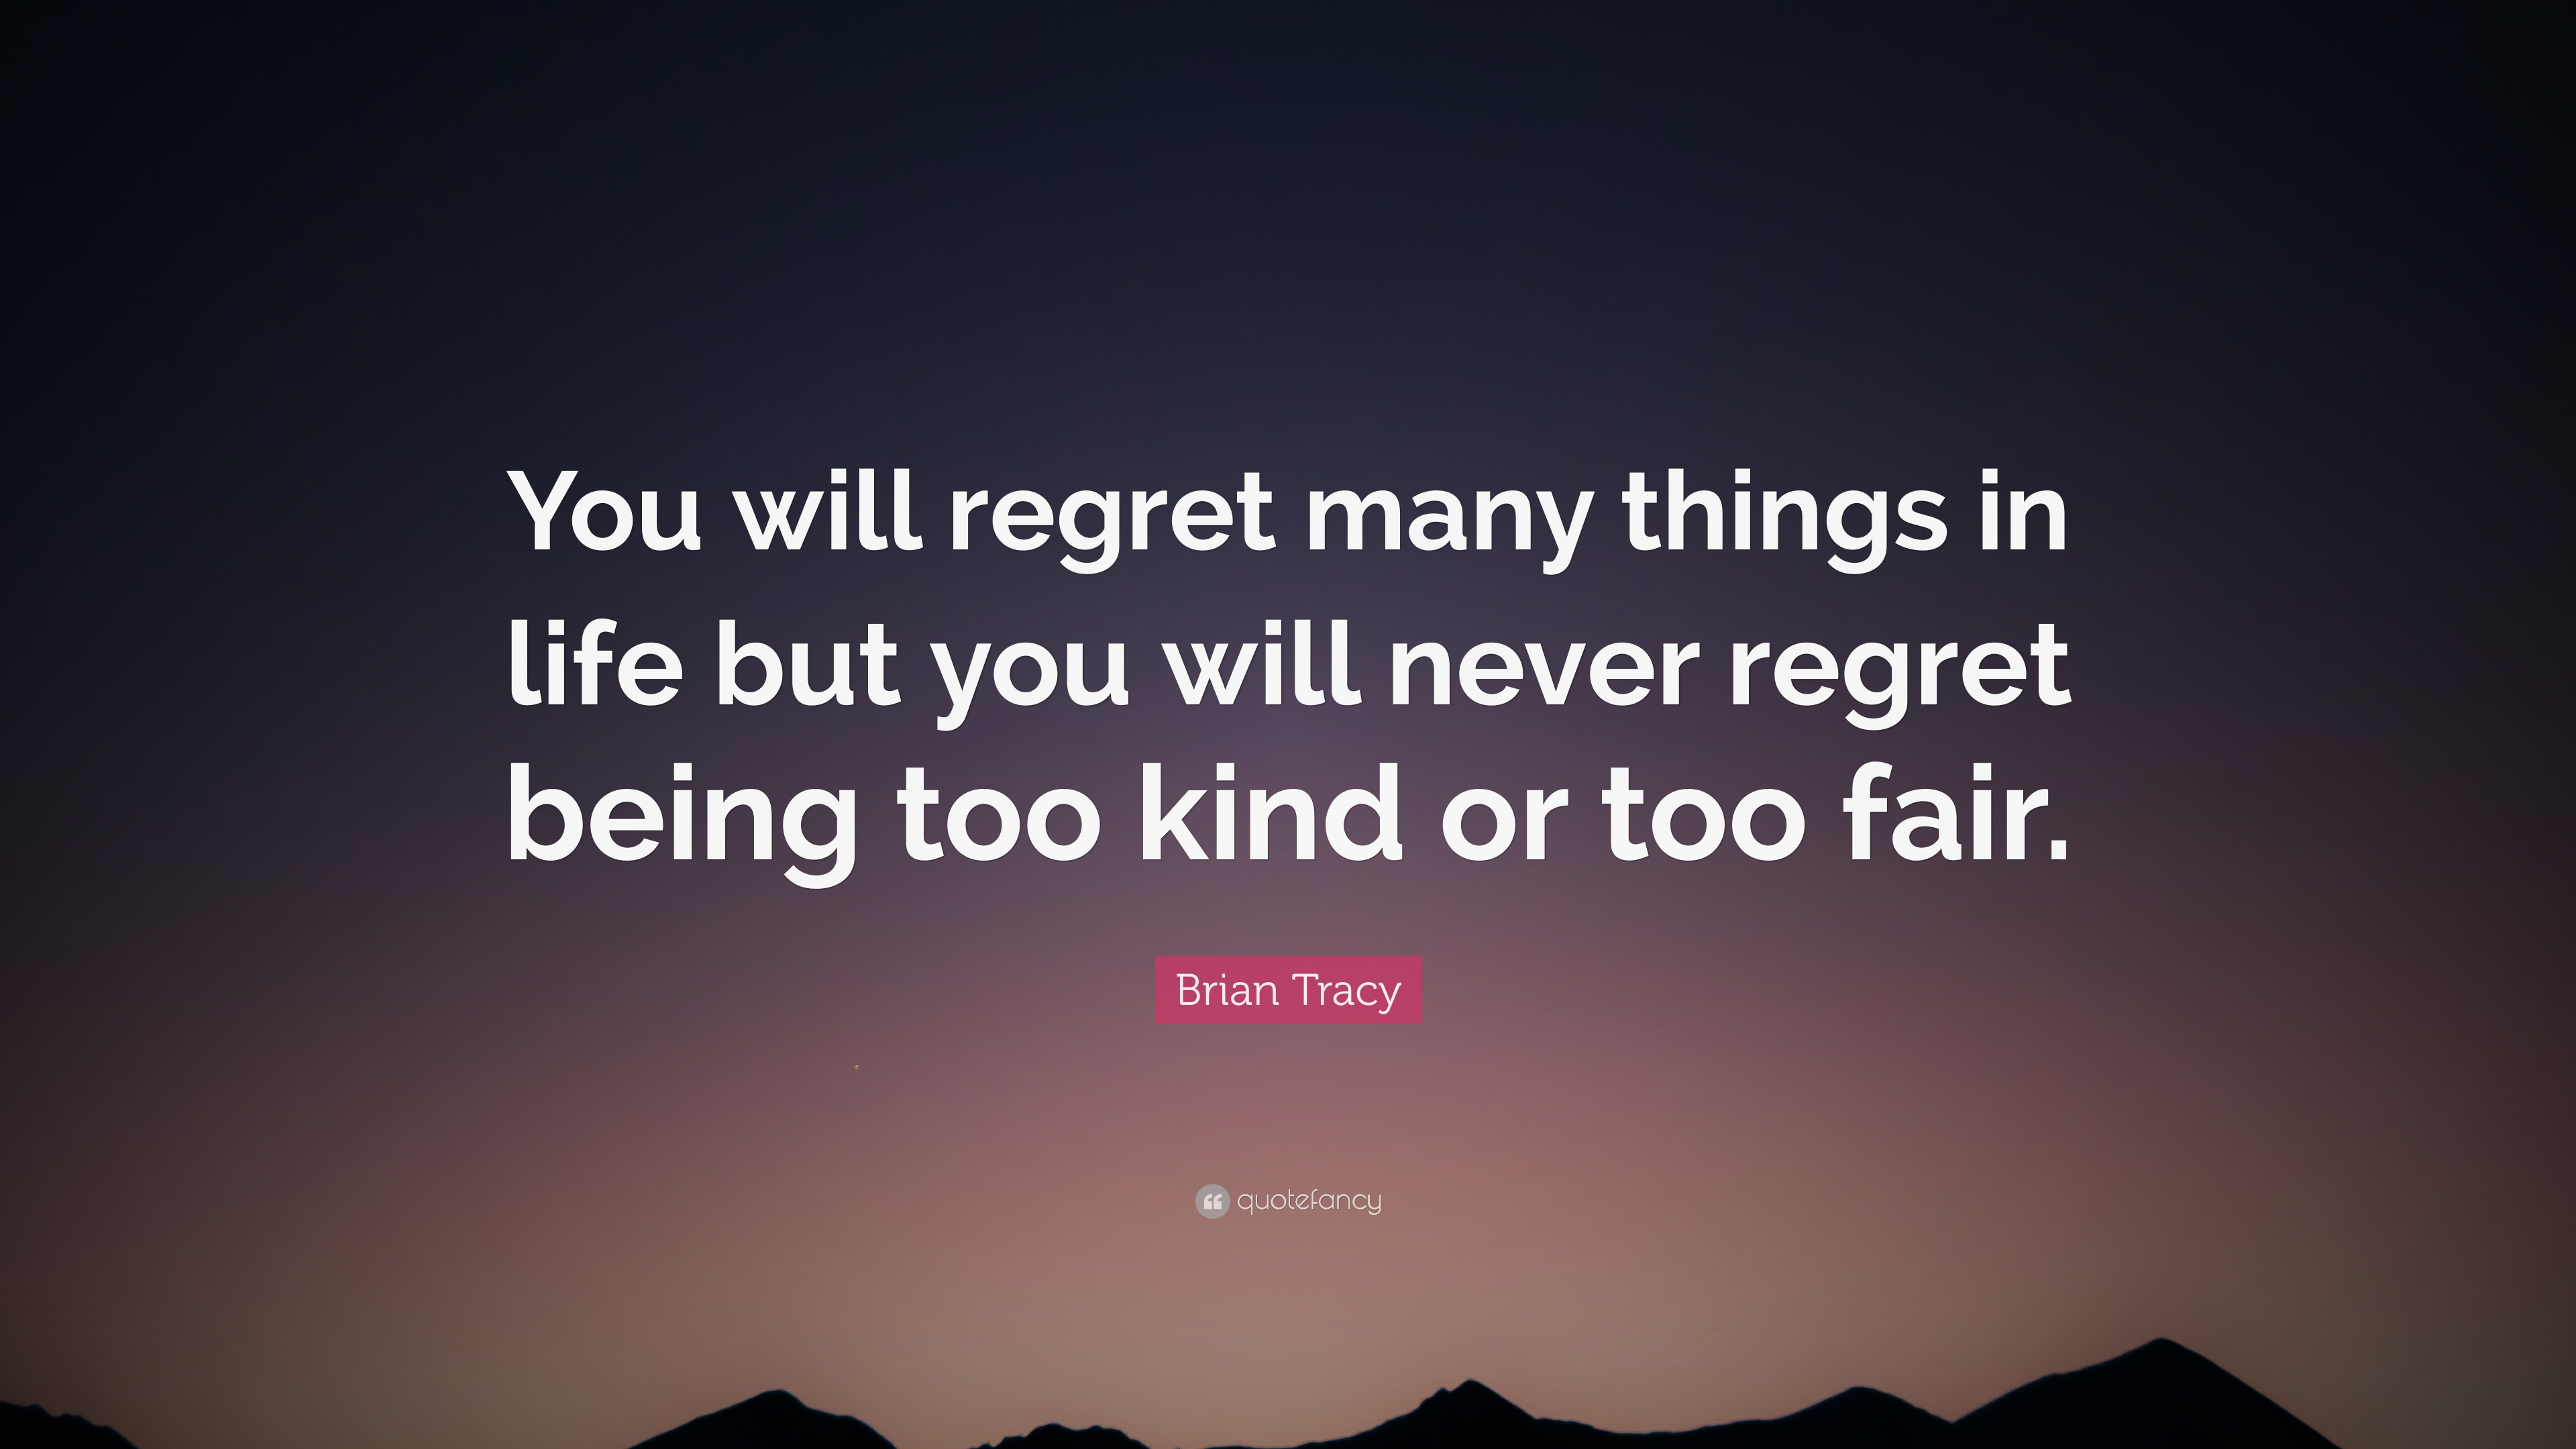 Brian Tracy Quote You Will Regret Many Things In Life But You Will